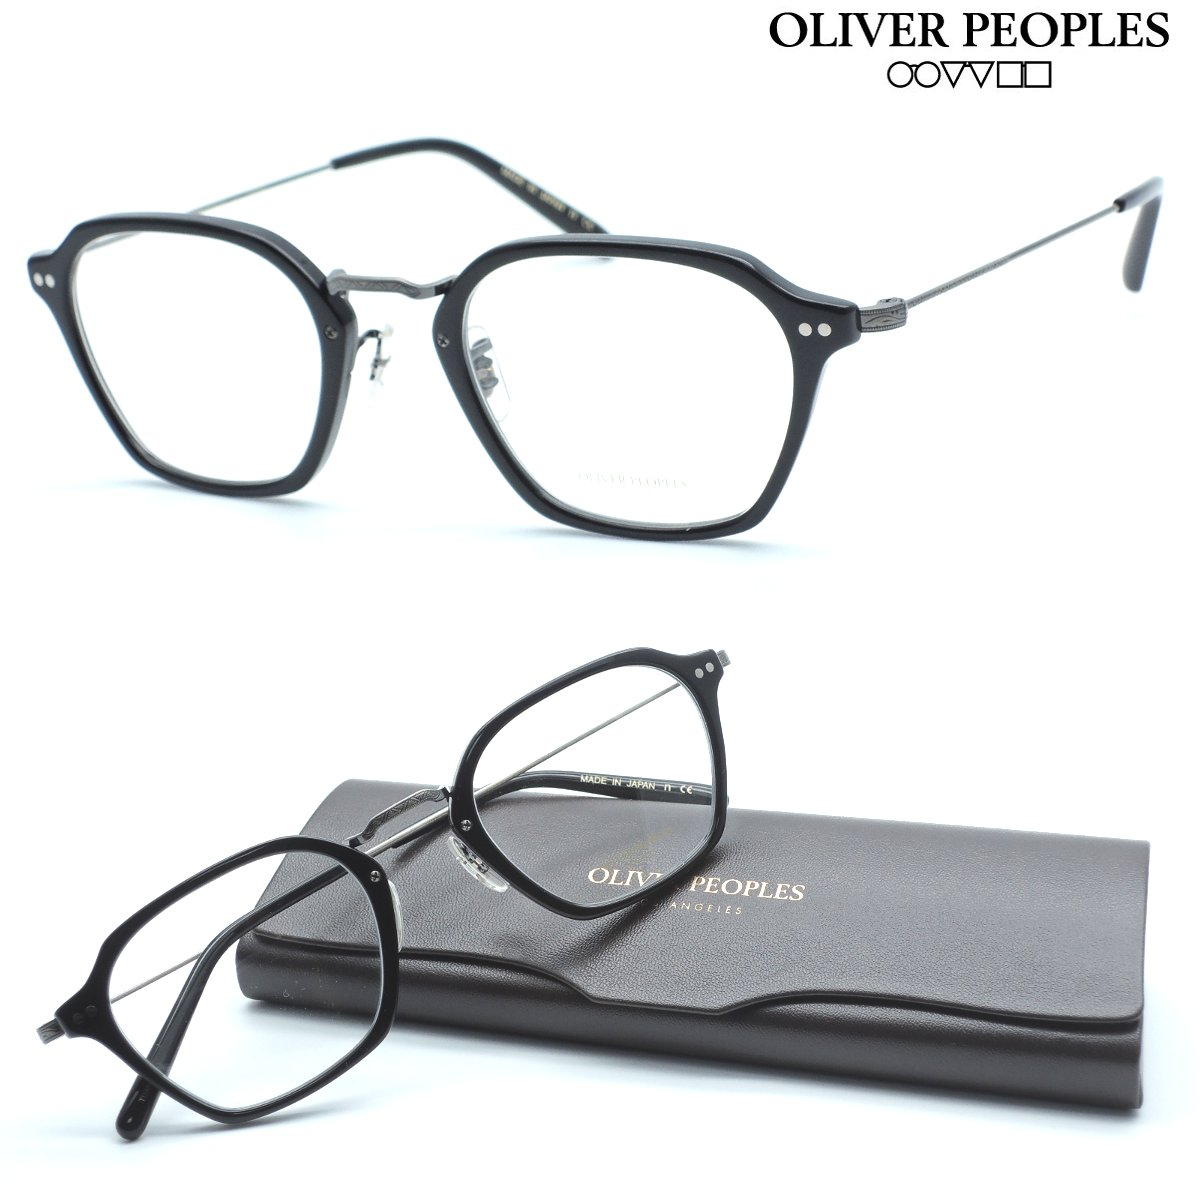 【OLIVER PEOPLES】オリバーピープルズ メガネ OV5422D col.1681 HILDEN 度付又は度無レンズ標準装備 【oliver peoples オリバーピープルズ 】【店内全品送料無料】【正規代理店品】クラシック ボストン